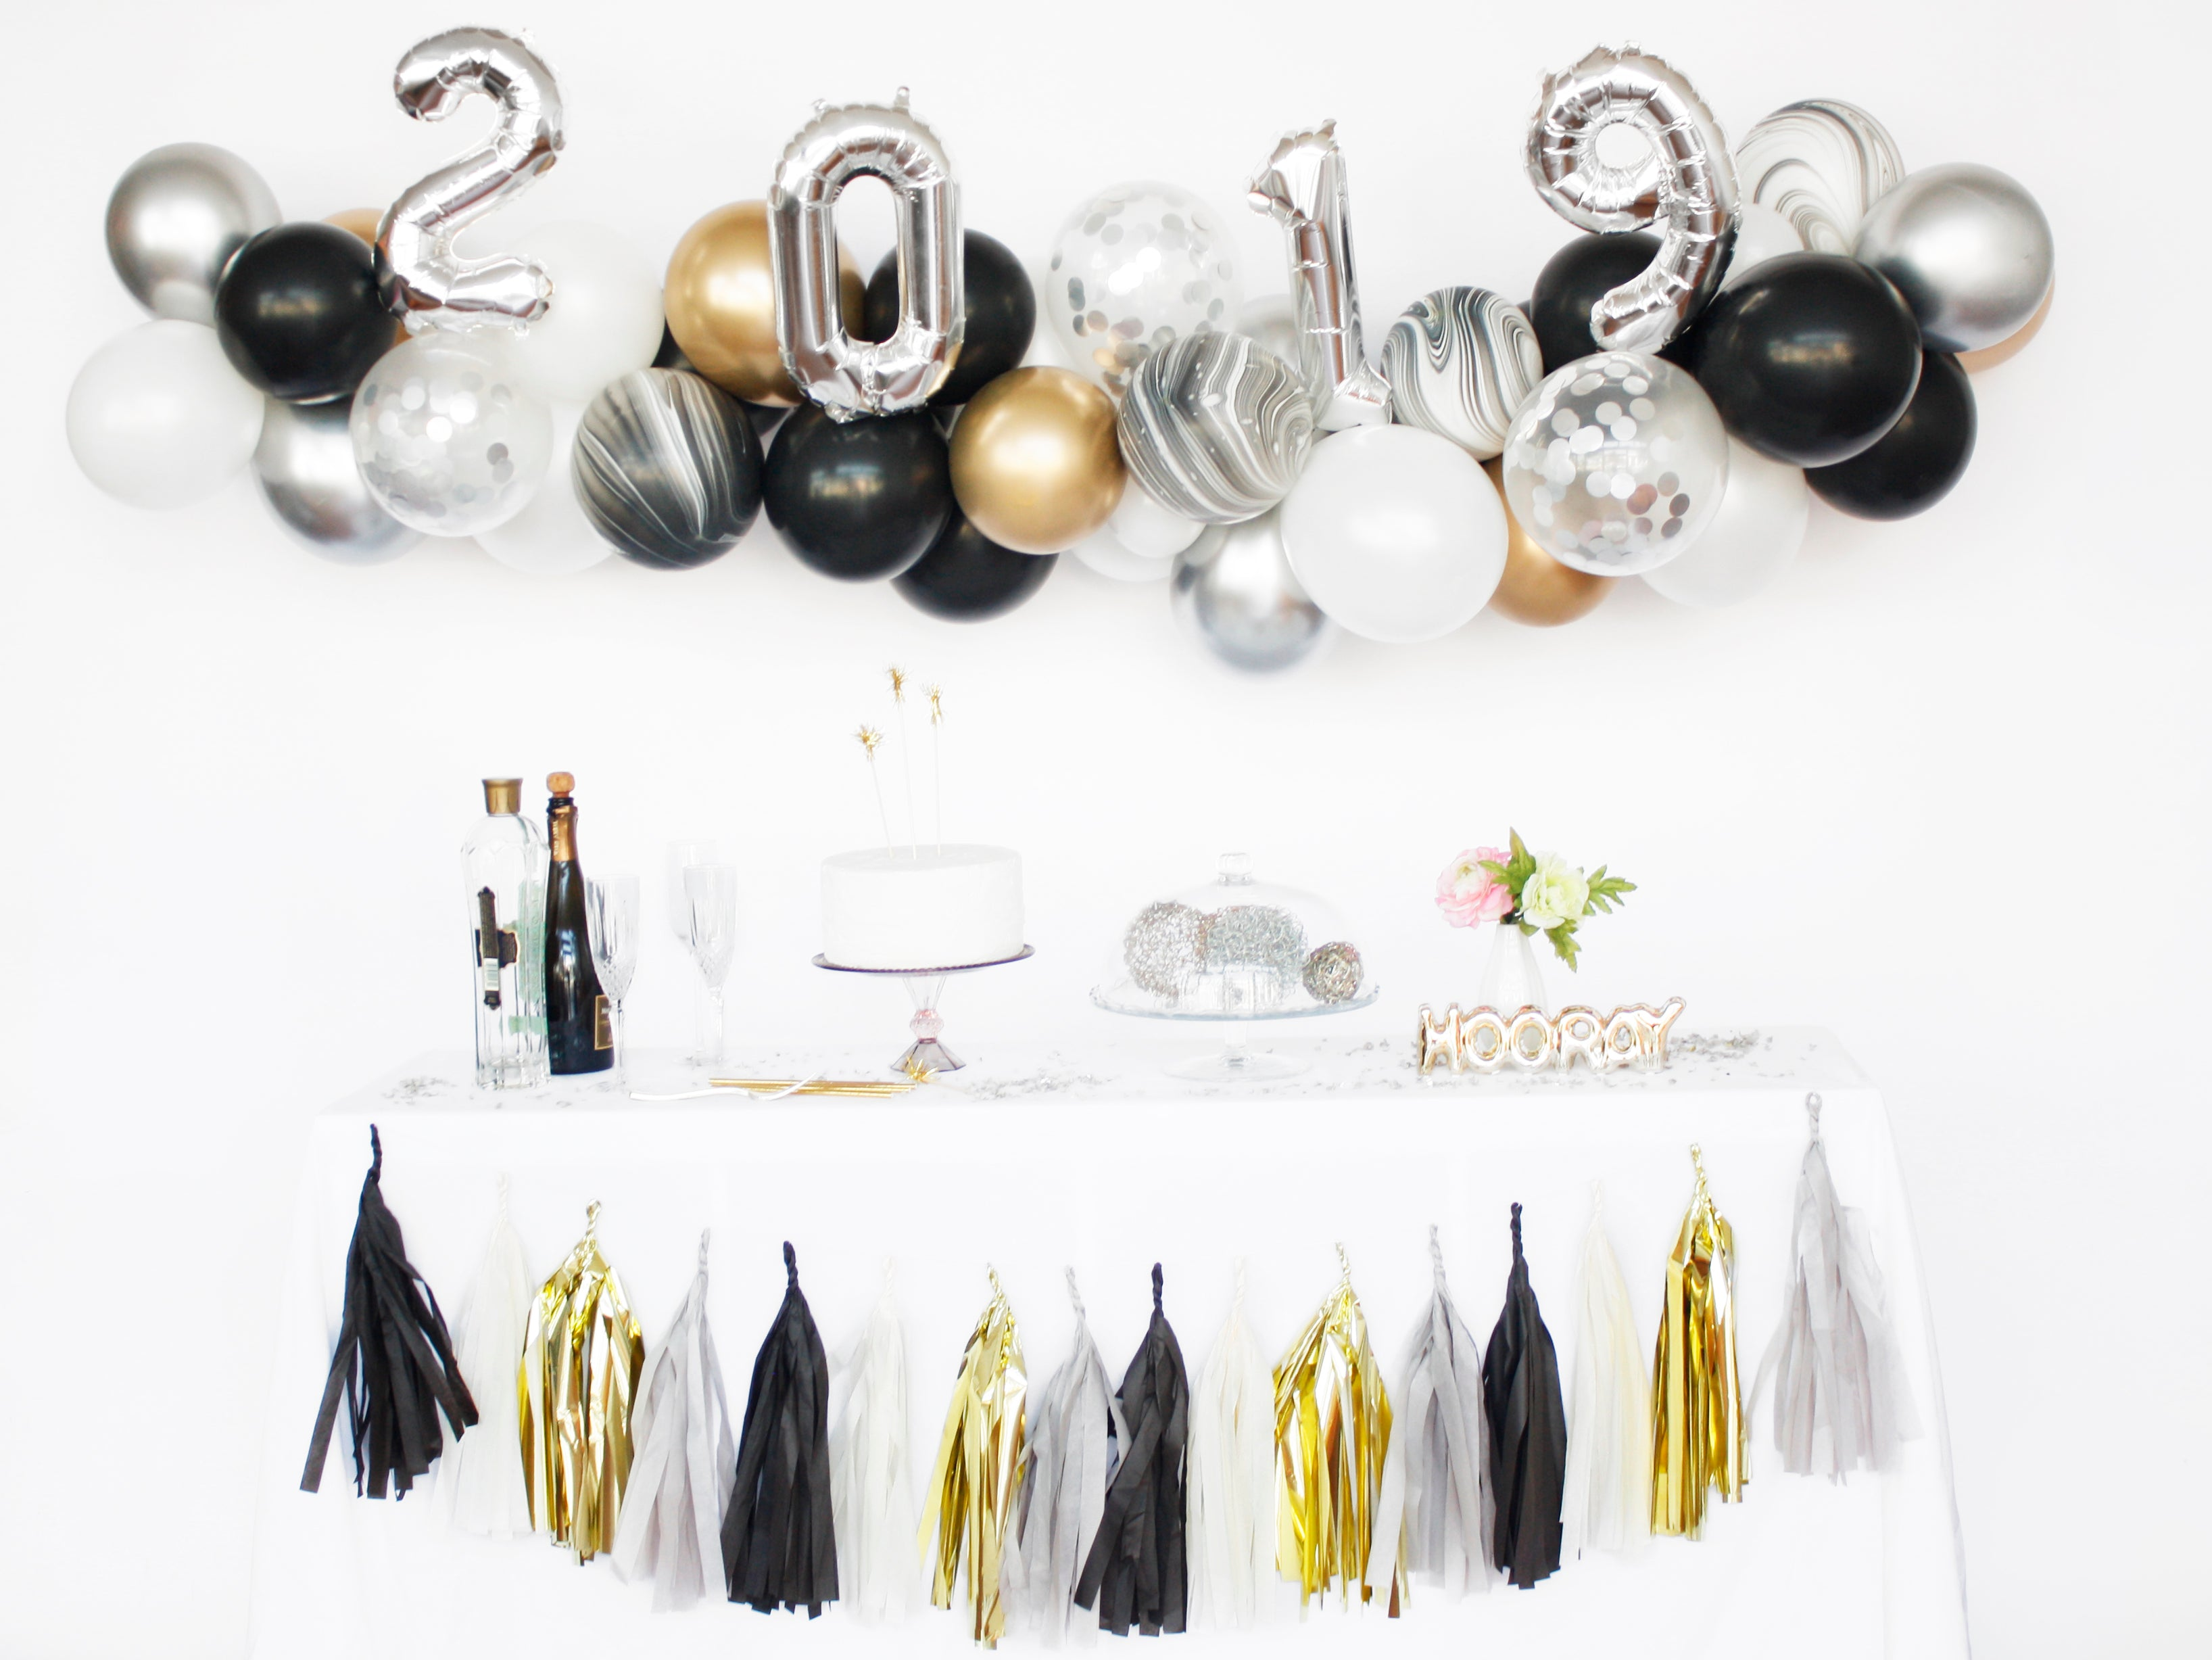 Balloon Garland Kit Diy New Years Eve 2019 Arch Backdrop Oh